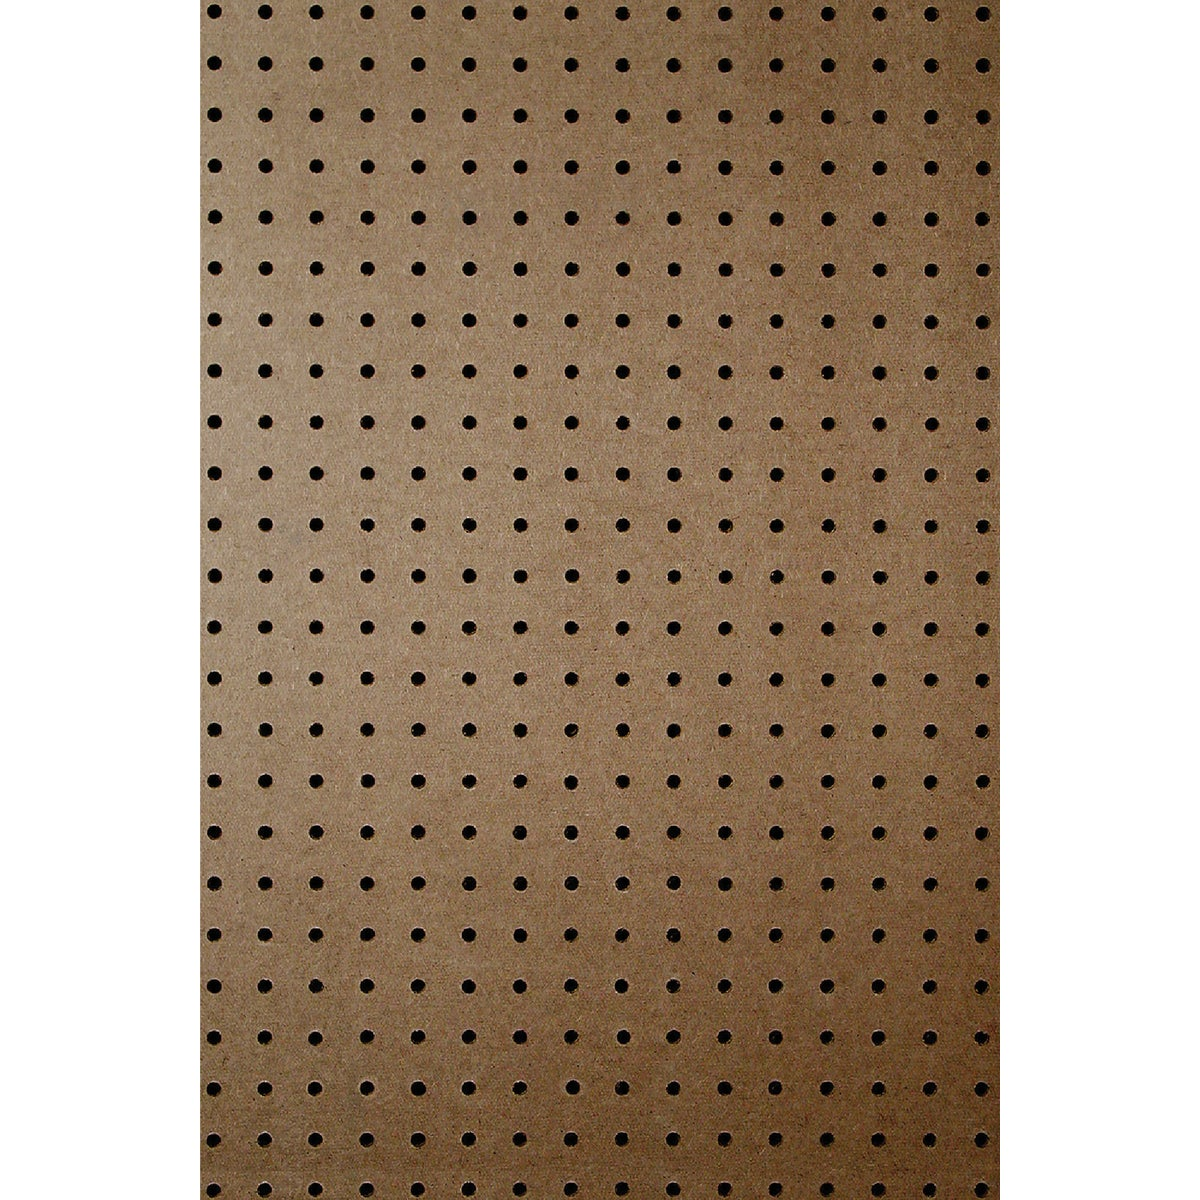 "1/4""48X24 TMPRD PEGBOARD - PTS2202448 by Dpi Decorative Panel"